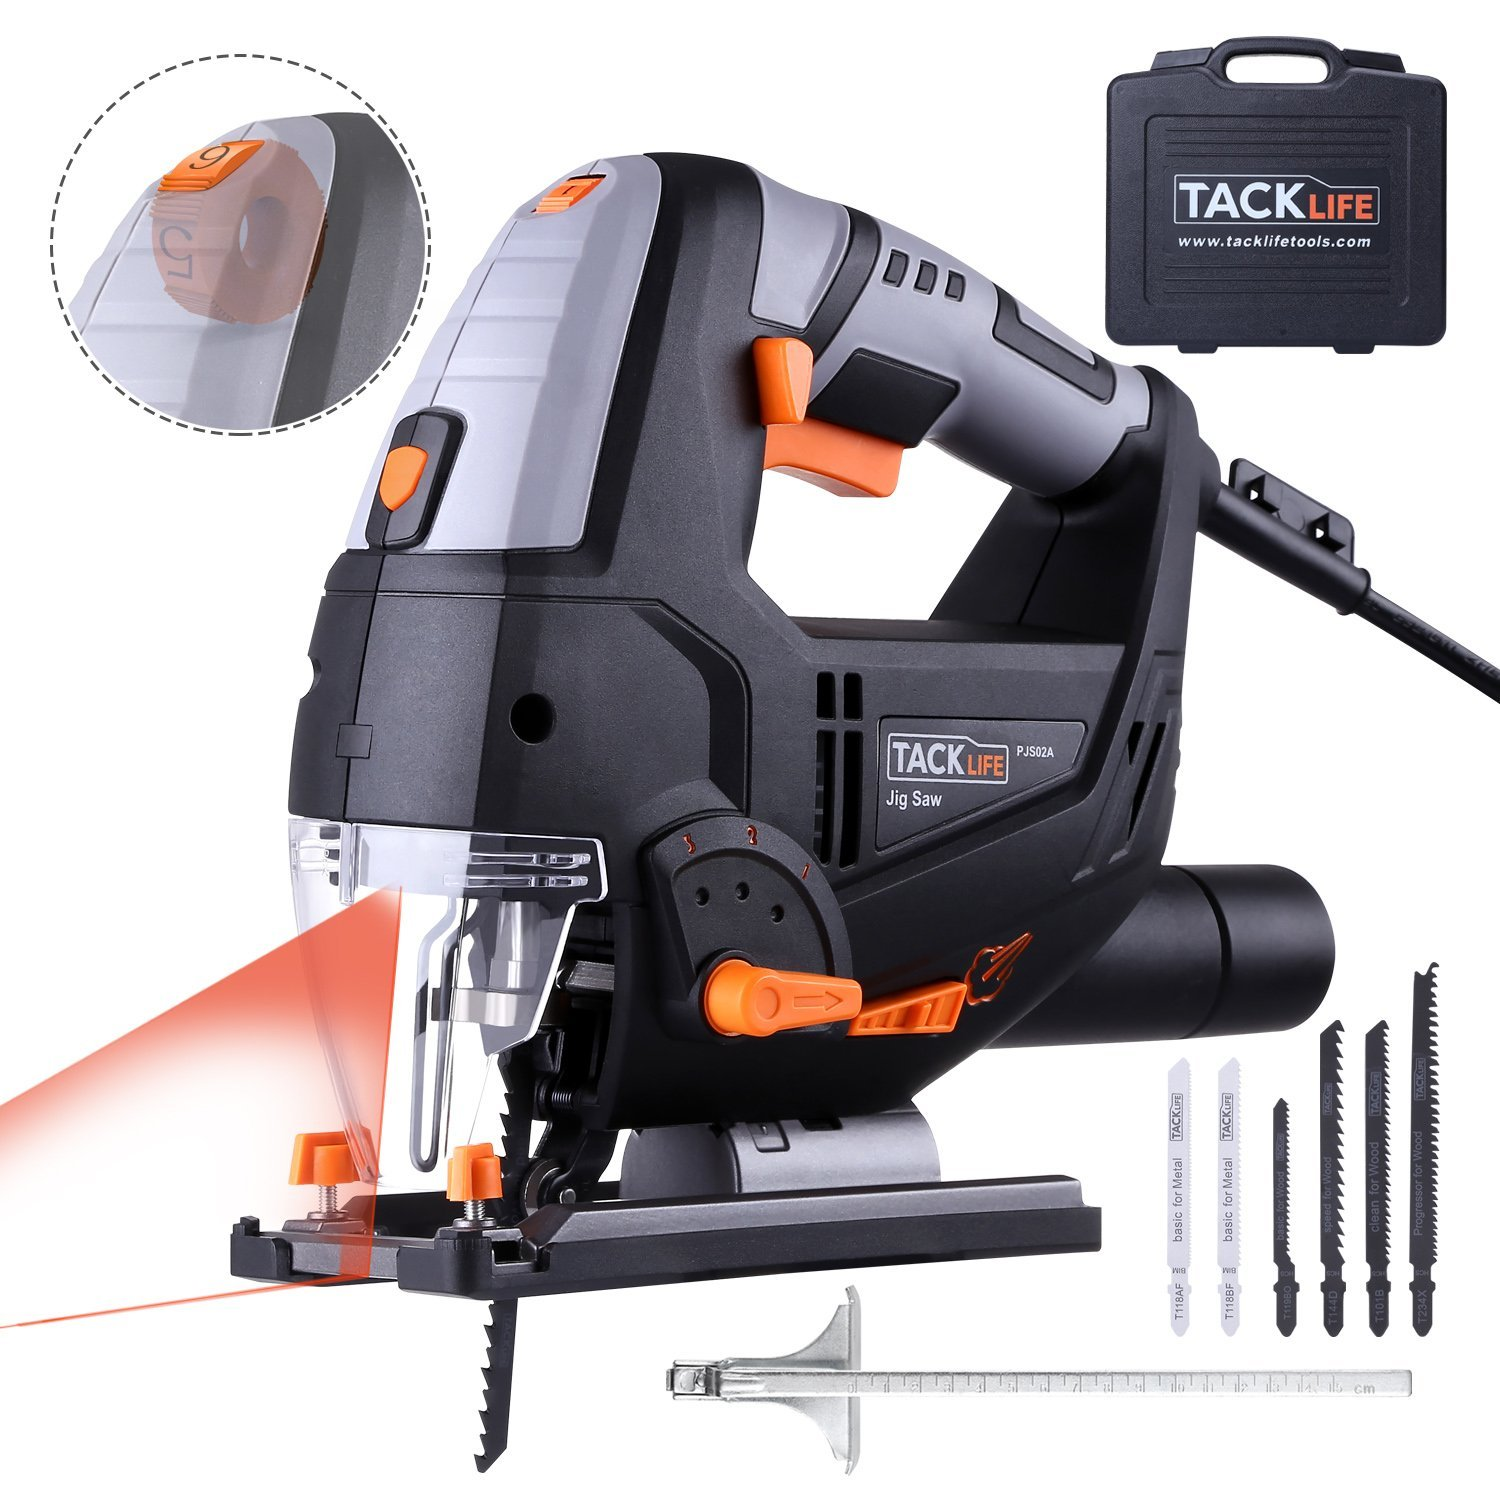 Tacklife 6.7-Amp Laser Jig Saw Review 1